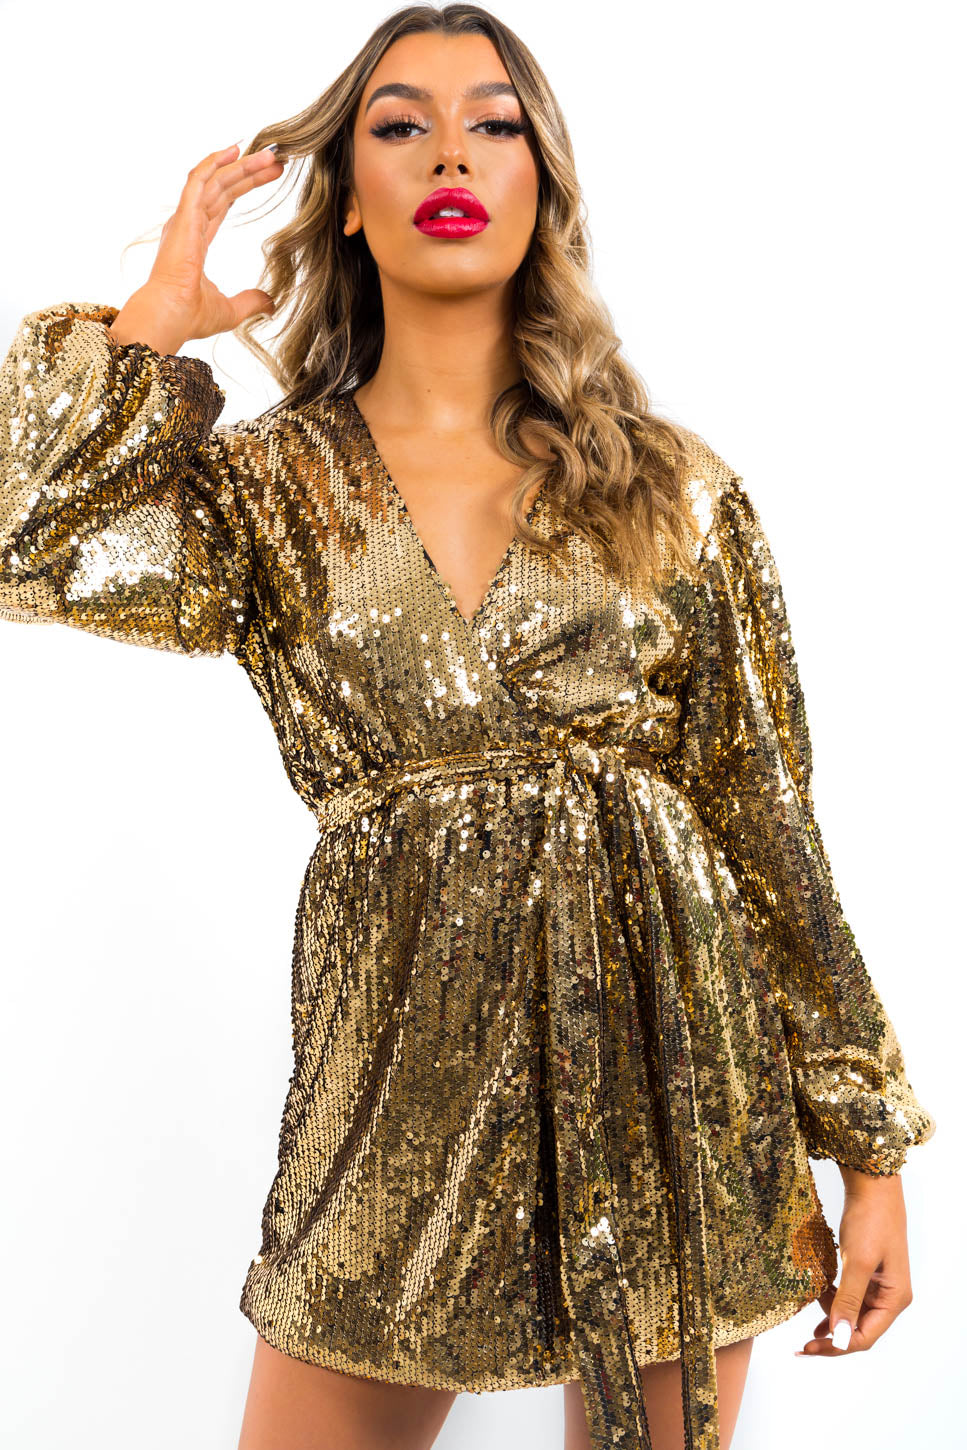 Blame It On The Boogie - Mini Dress In GOLD/SEQUIN